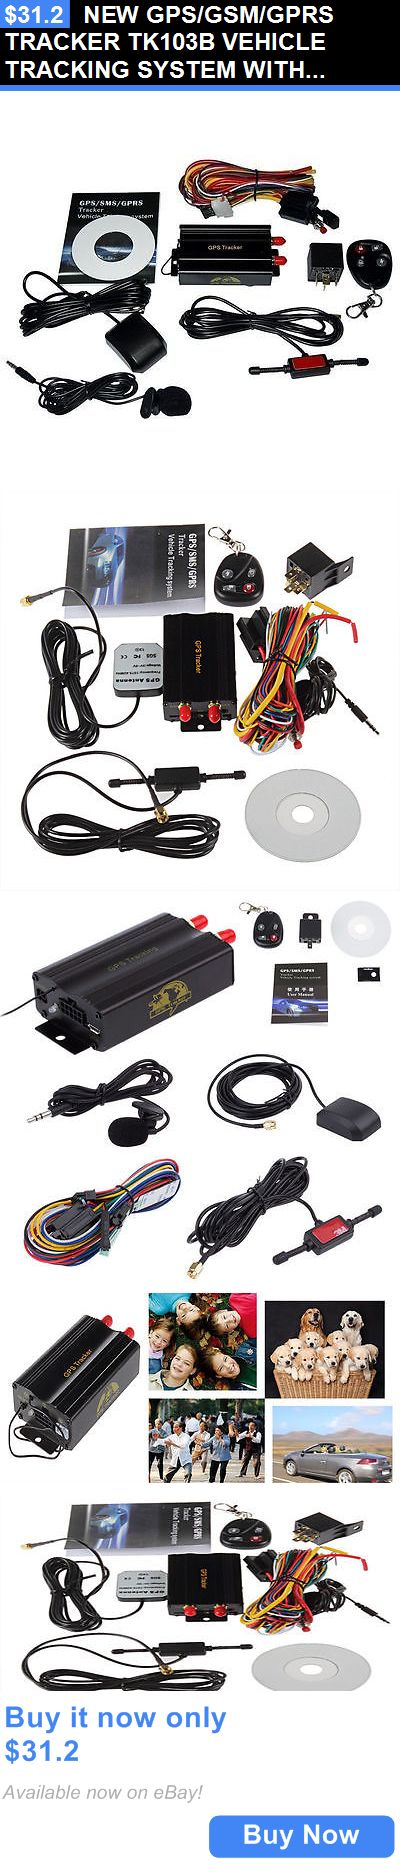 Tracking Devices: New Gps/Gsm/Gprs Tracker Tk103b Vehicle Tracking System With Remote Control Usa BUY IT NOW ONLY: $31.2